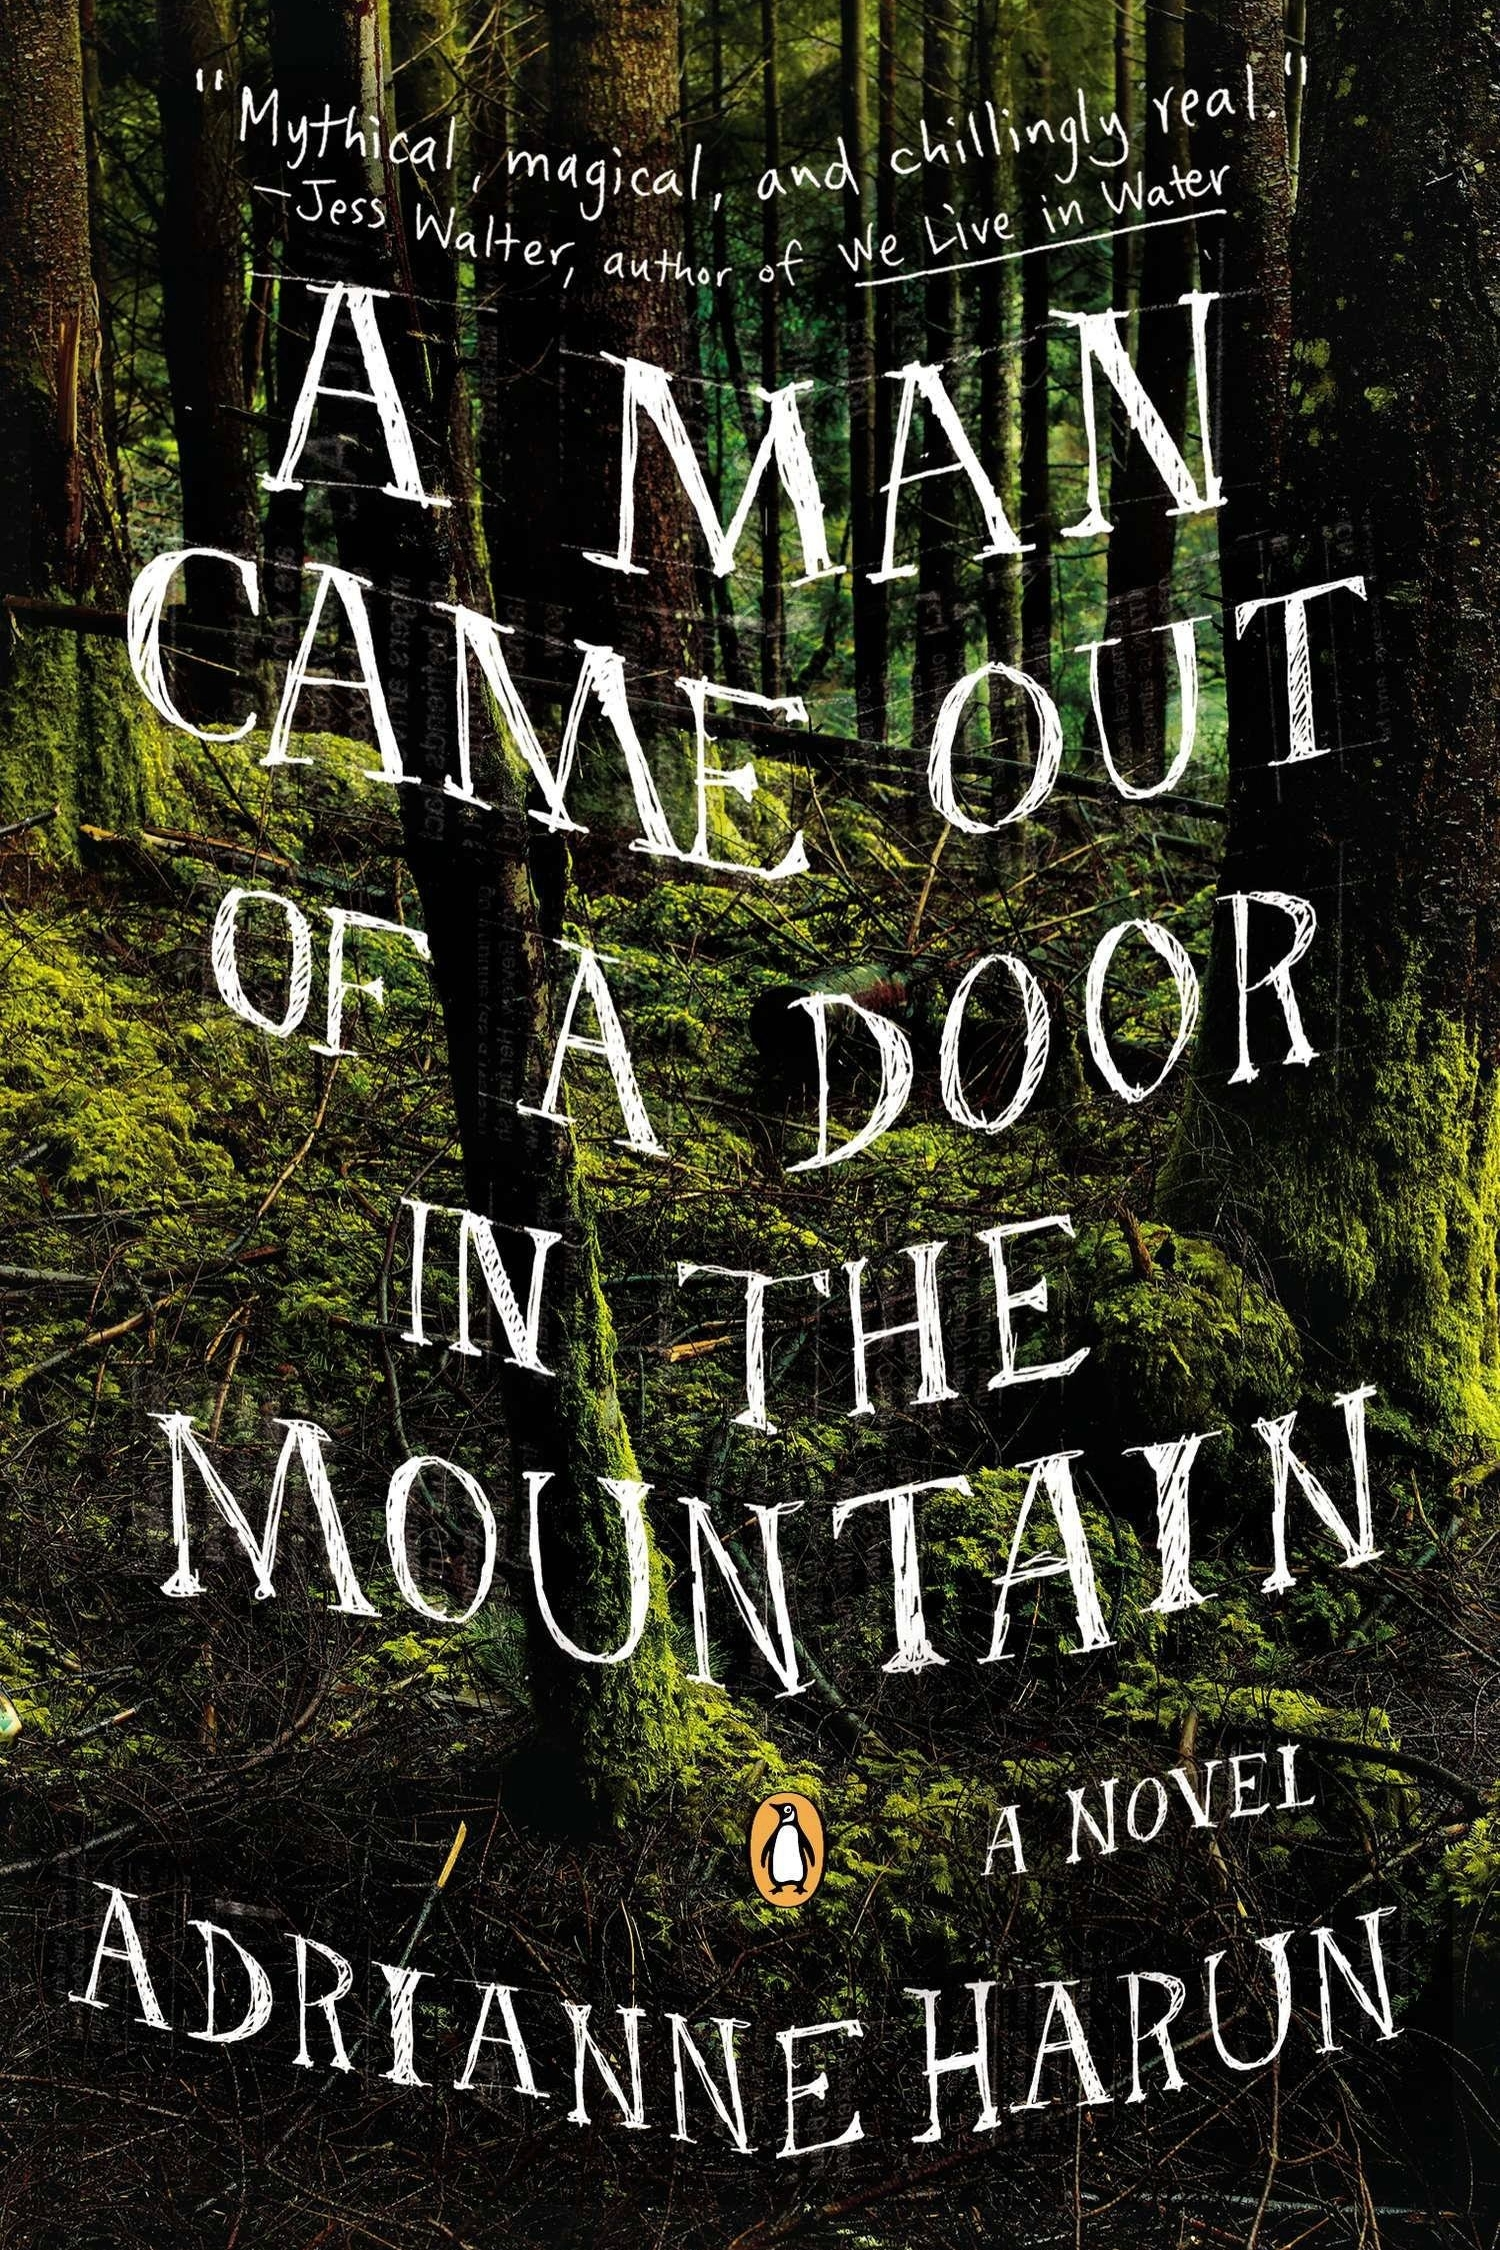 A MAN CAME OUT OF A DOOR IN THE MOUNTAIN   In isolated British Columbia, girls, mostly Native, are vanishing from the sides of a notorious highway. Leo Kreutzer and his four friends are barely touched by these disappearances–until a series of mysterious and troublesome outsiders come to town, and it seems as if the devil himself has appeared among them. In this intoxicatingly lush debut novel, Adrianne Harun weaves together folklore, mythology, and elements of magical realism to create a compelling and unsettling portrait of life in a dead-end town.  A Man Came Out of a Door in the Mountain  is atmospheric and evocative, a broken world rendered with grit and poetry in equal measure.    More Information      Buy Book